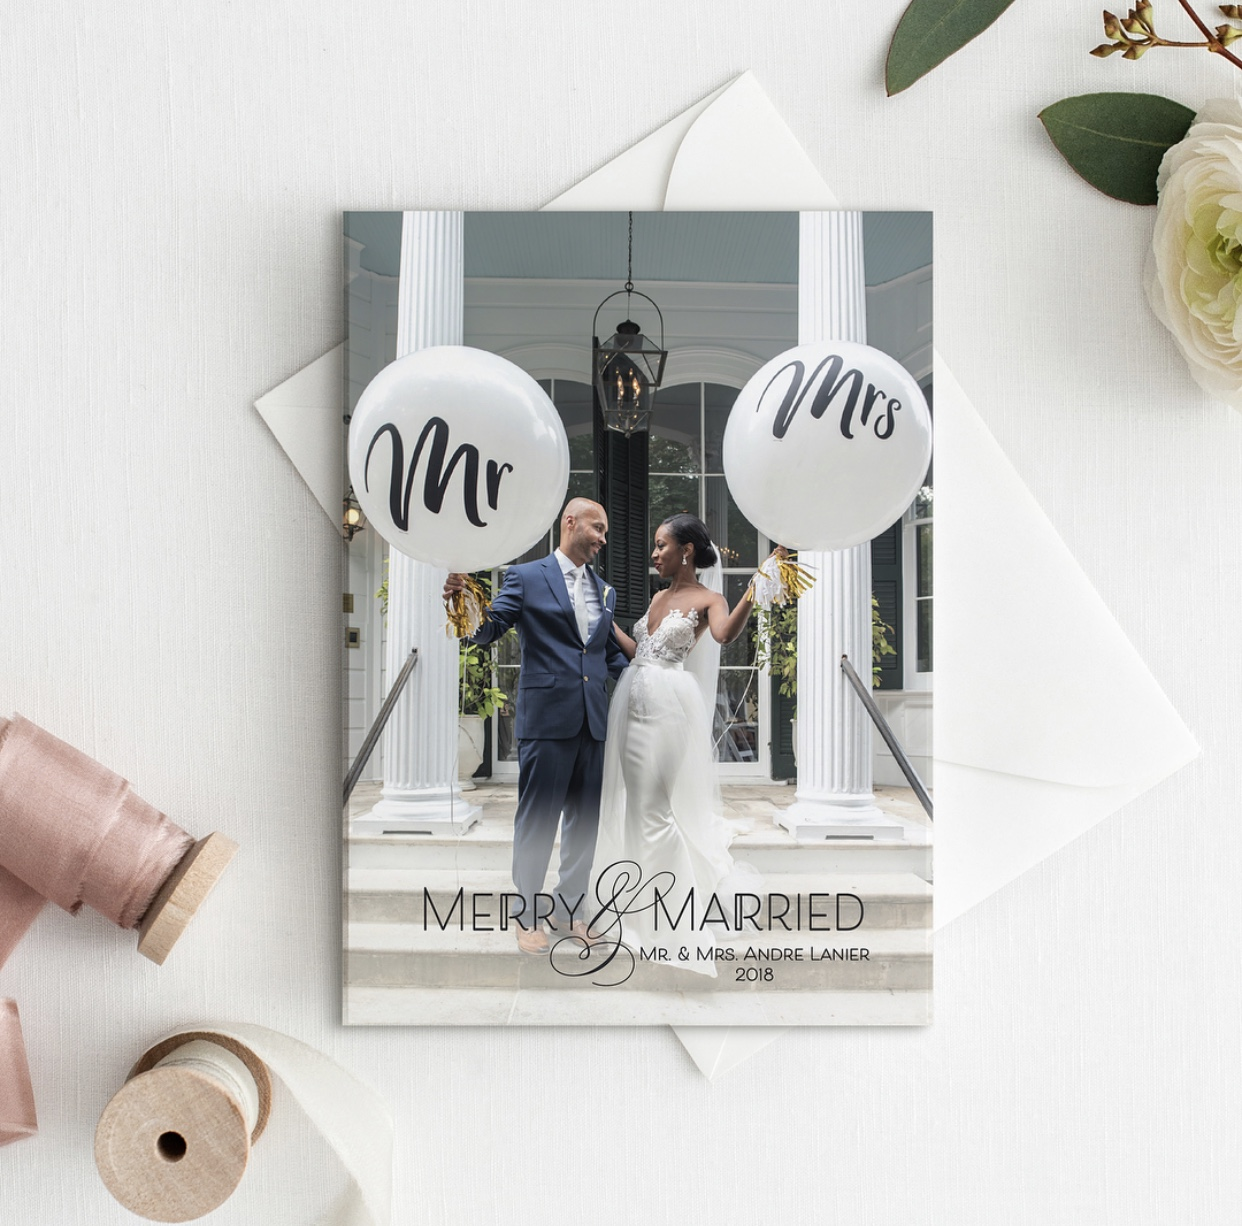 Merry + Married Custom Holiday Cards - Open Invitation Stationery Boutique